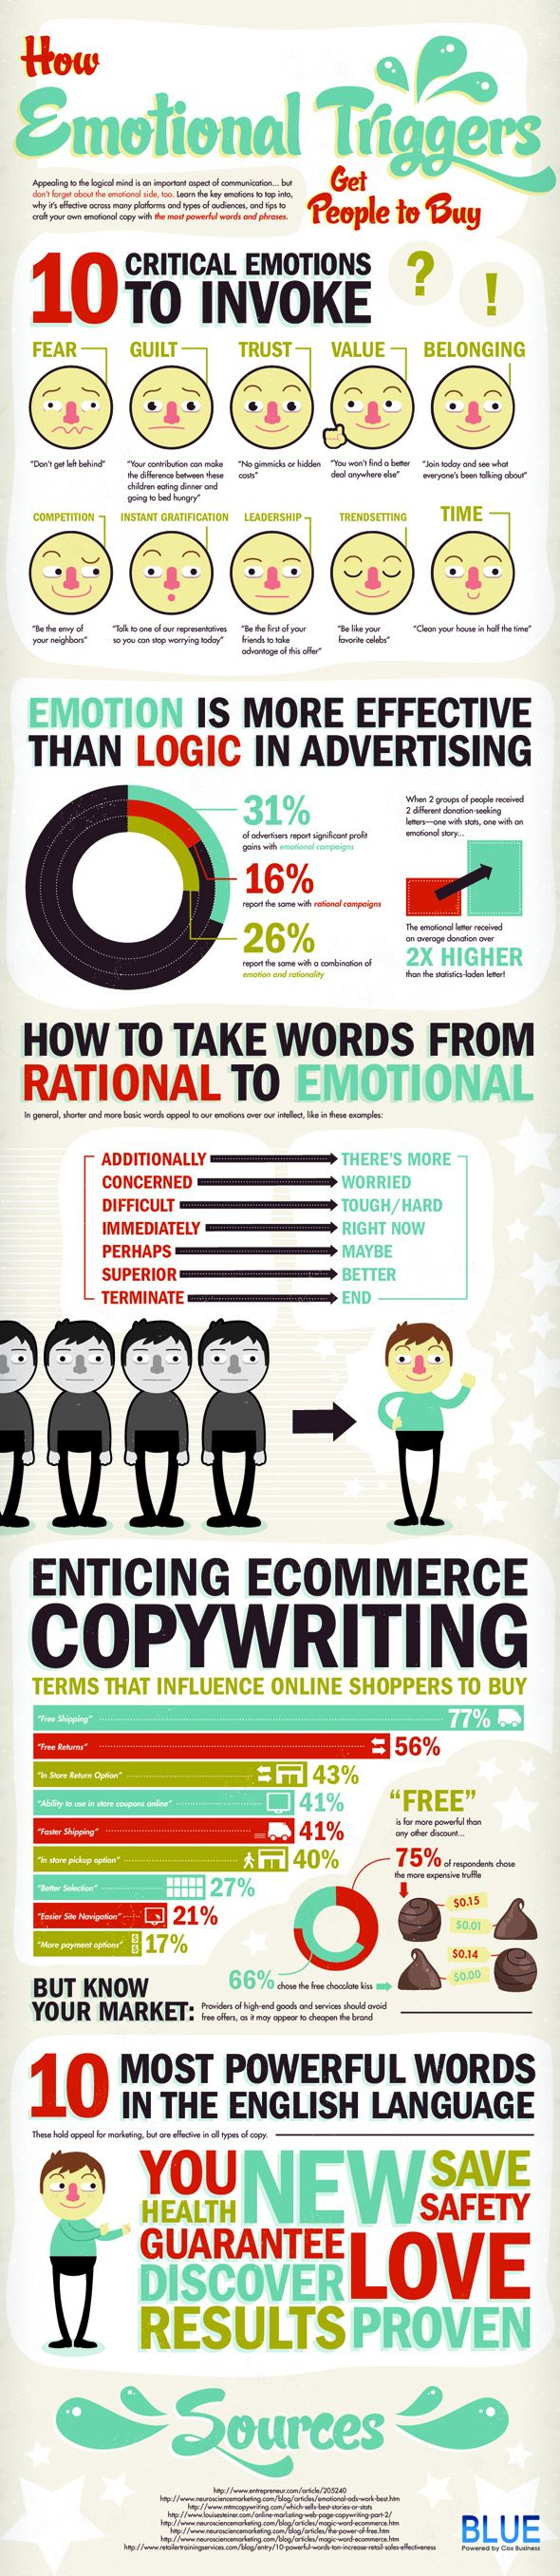 10 Critical Emotional Triggers Your Website Copy Must Invoke to Get People to Buy From You #WebDesign #Infographic